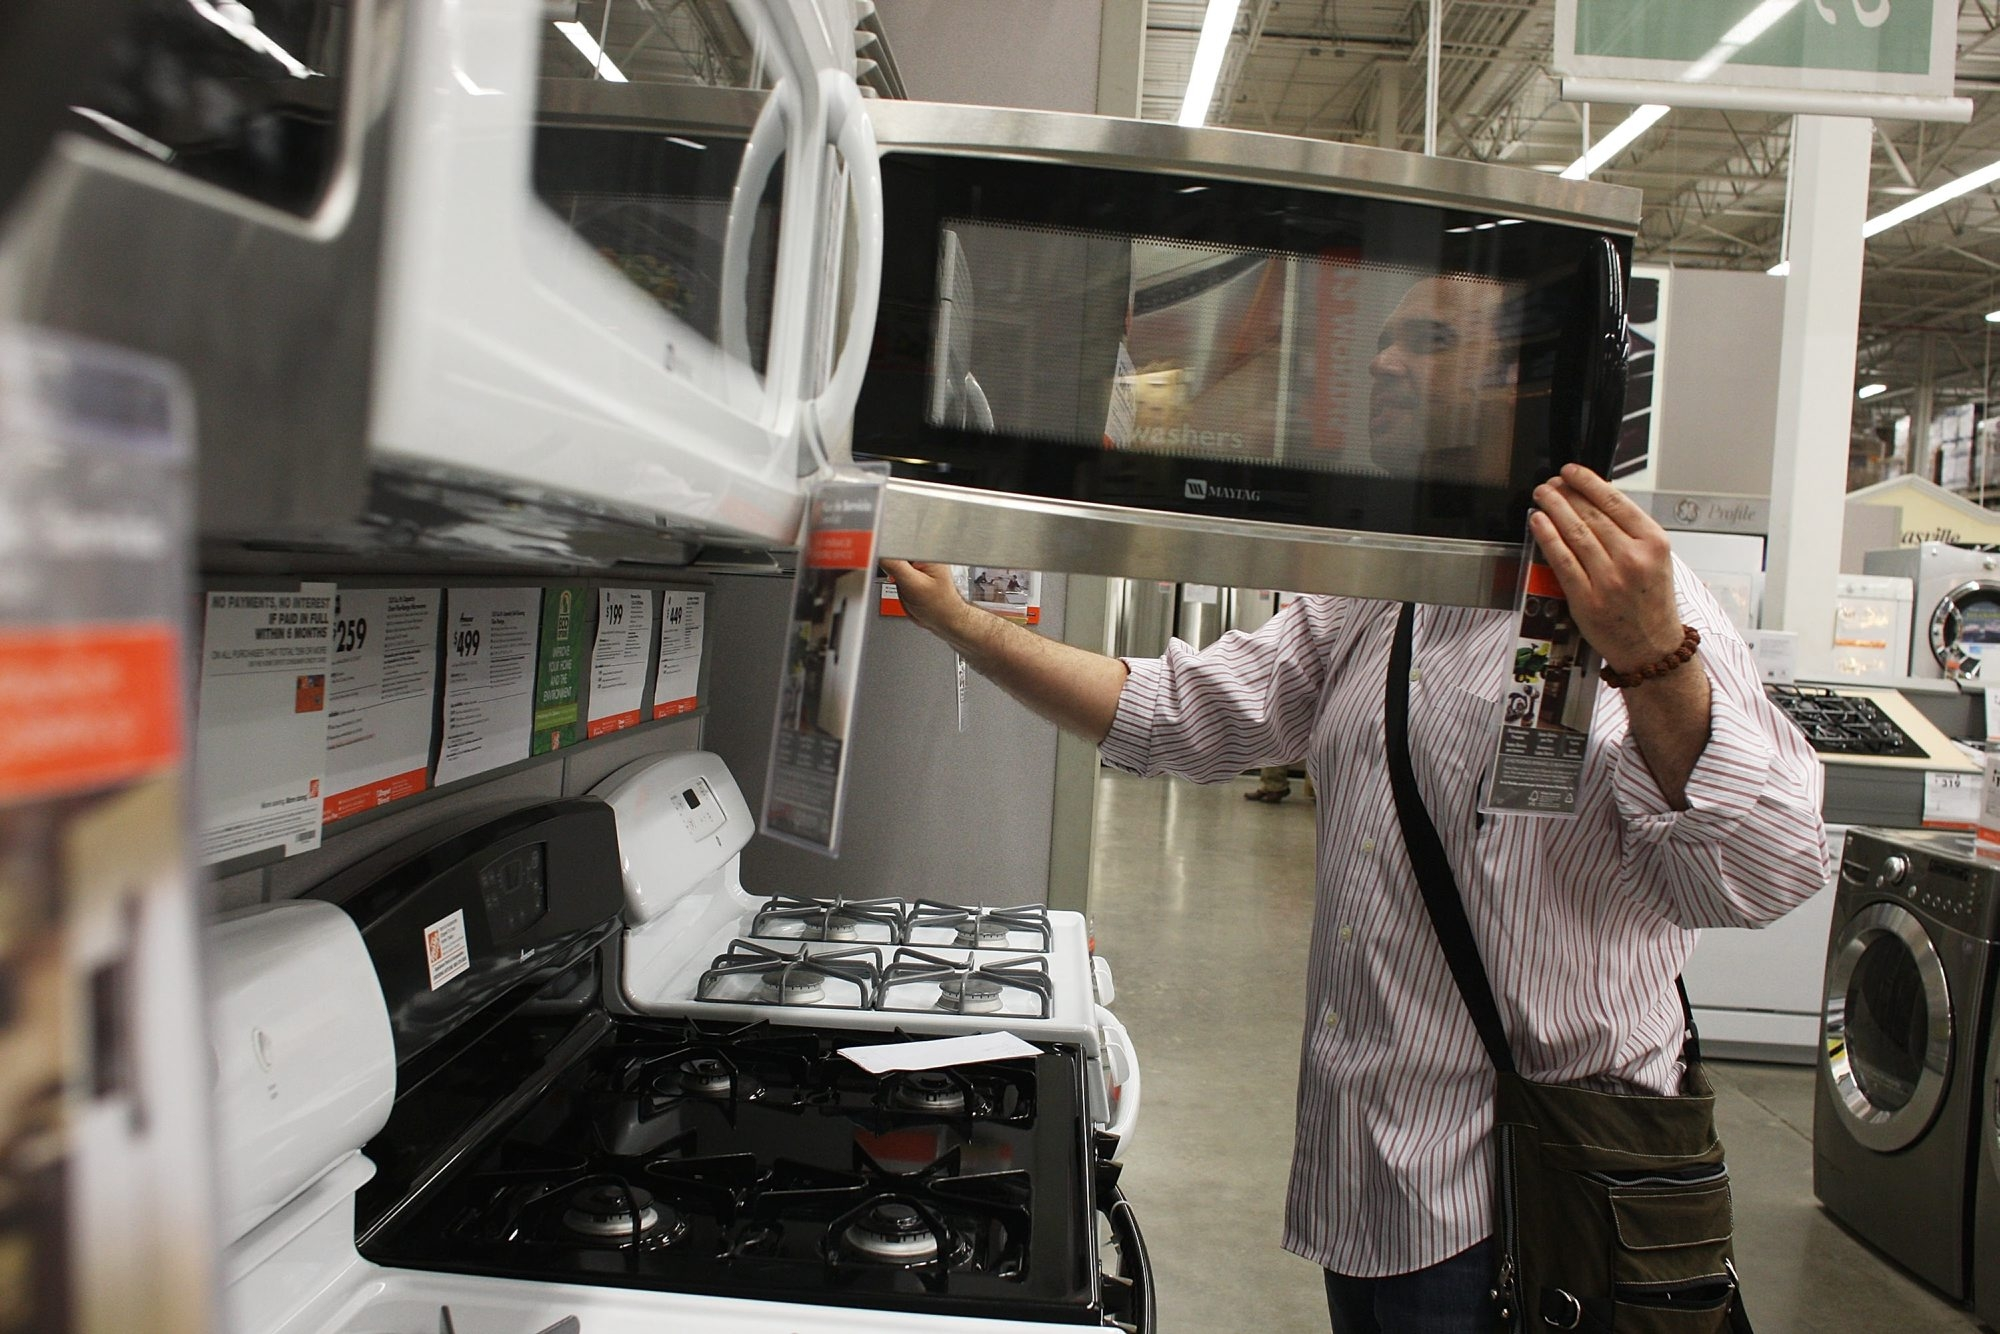 NEW YORK – MAY 19:  Tim Scott of Brooklyn looks at appliances inside a Home Depot on May 19, 2009 in the Brooklyn borough of New York City.  Home Depot, the country?s largest home improvement retailer, reported Tuesday that its first-quarter profit climbed 44 percent, earning $514 million for the quarter ended May 3 despite a 10 percent drop in sales.  (Photo by Spencer Platt/Getty Images)